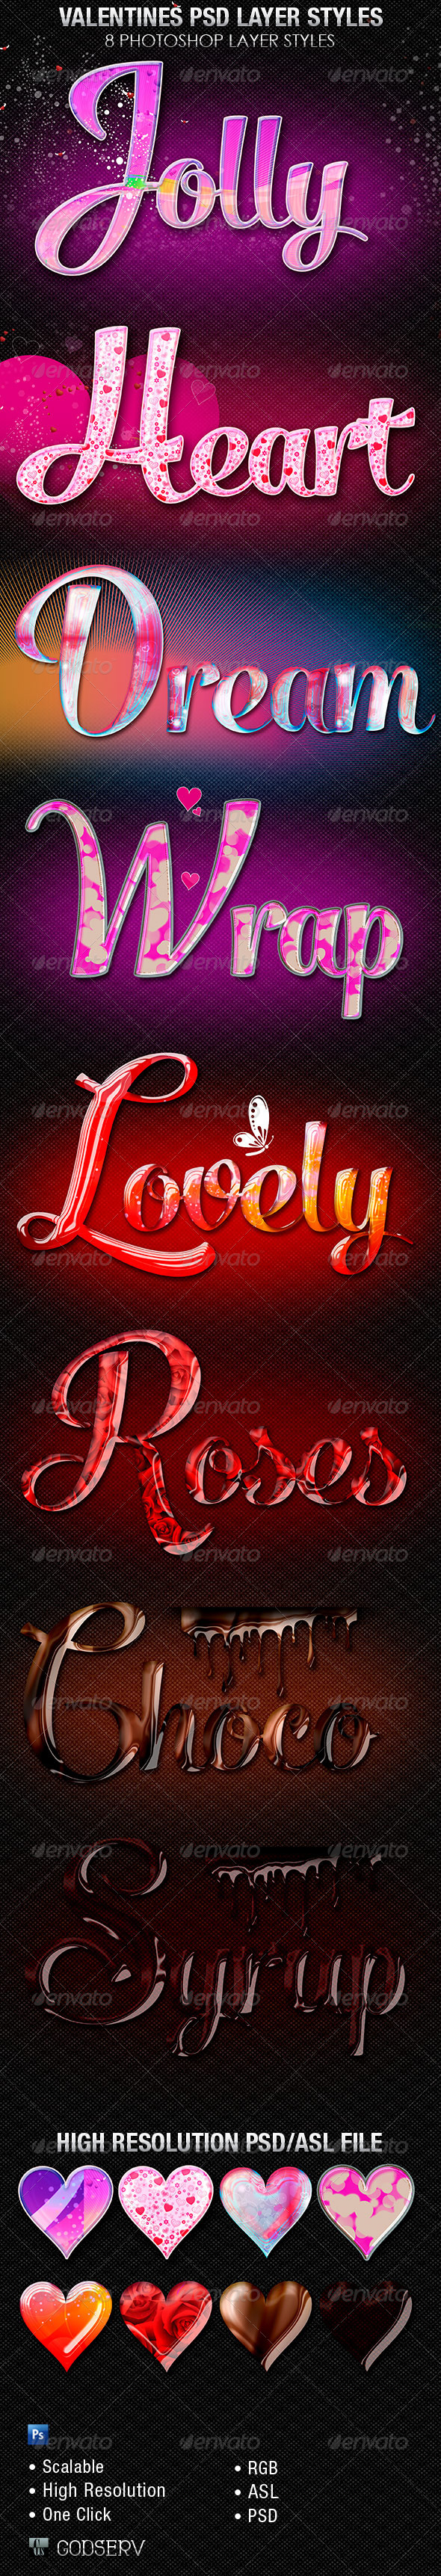 Valentines Photoshop Layer Styles  - Text Effects Styles